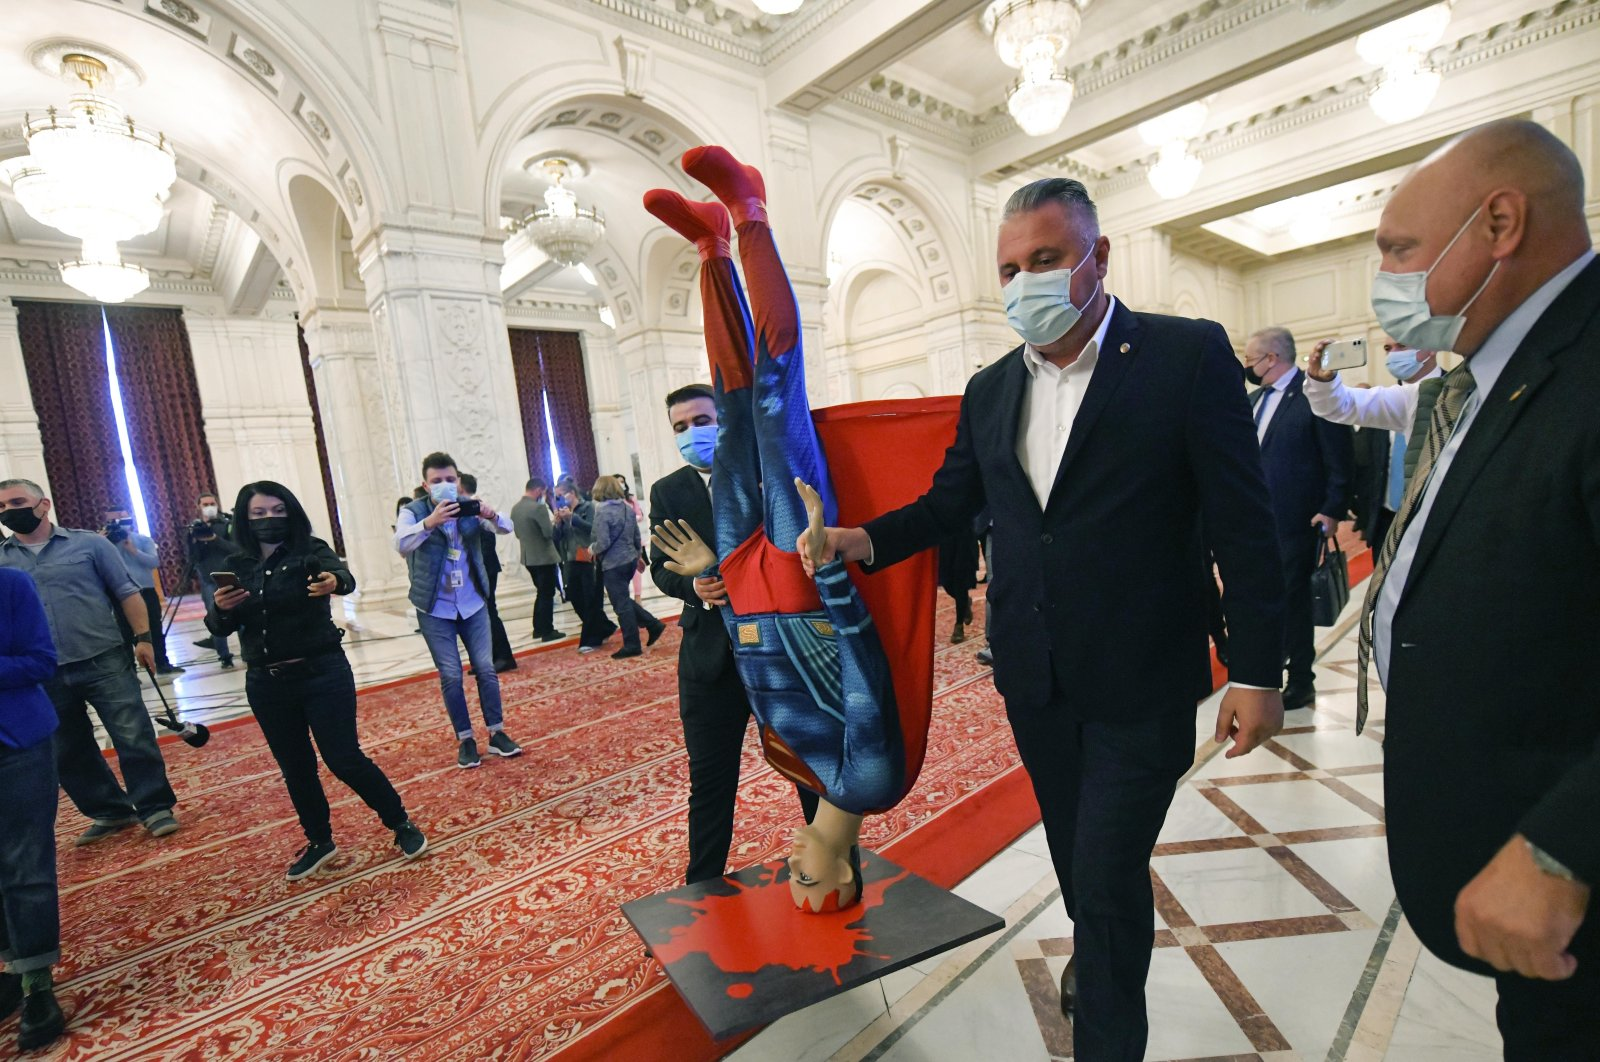 Men carry a mannequin depicting Superman ahead of a no confidence vote against Romanian Prime Minister Florin Citu's government in Romania's parliament in Bucharest, Romania, Oct. 5, 2021. (AP Photo)